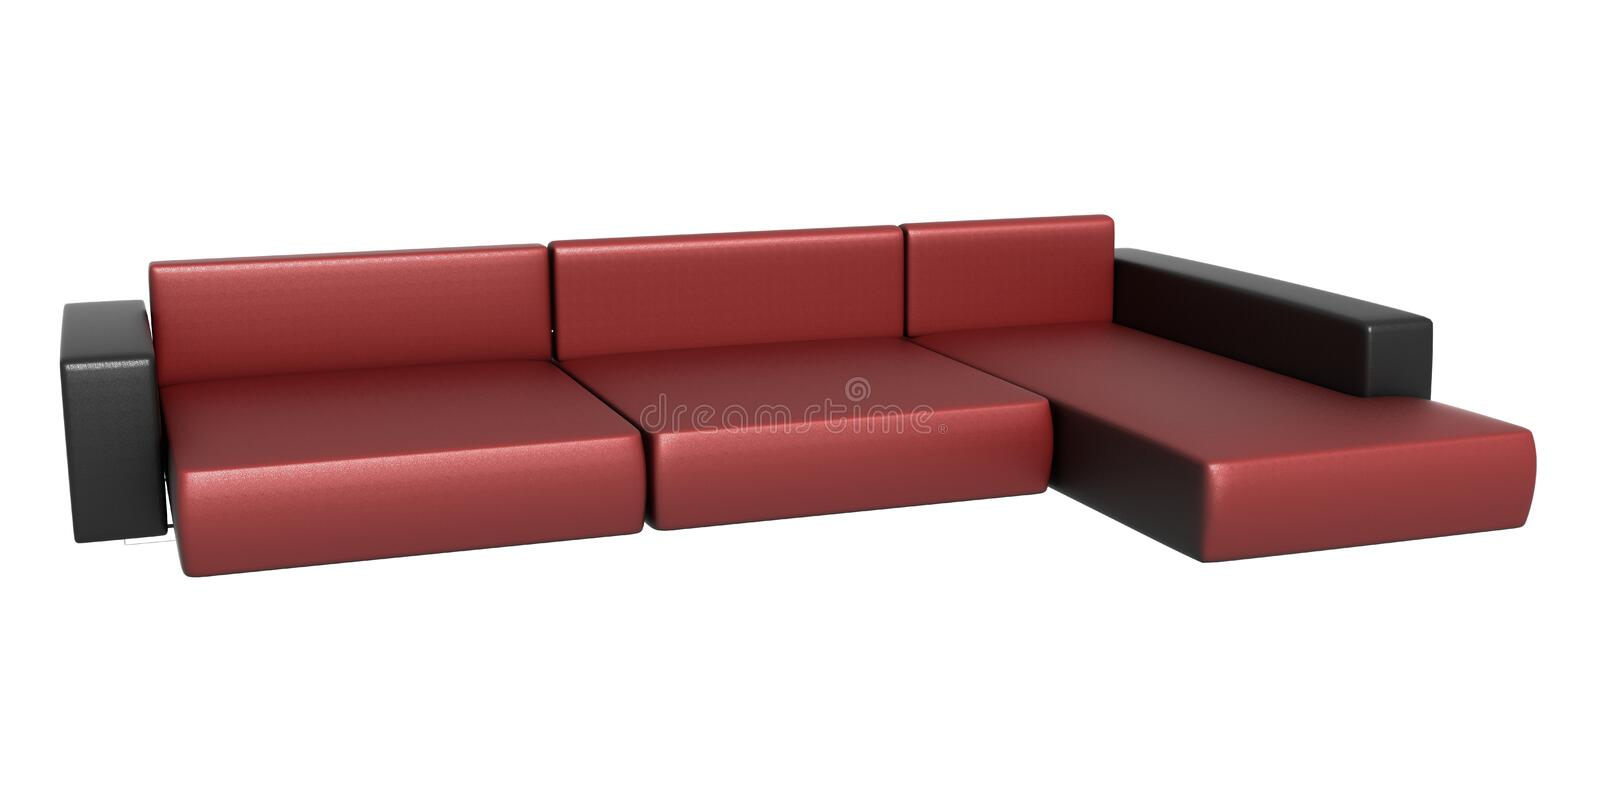 Black, Red Leather Couch royalty free illustration